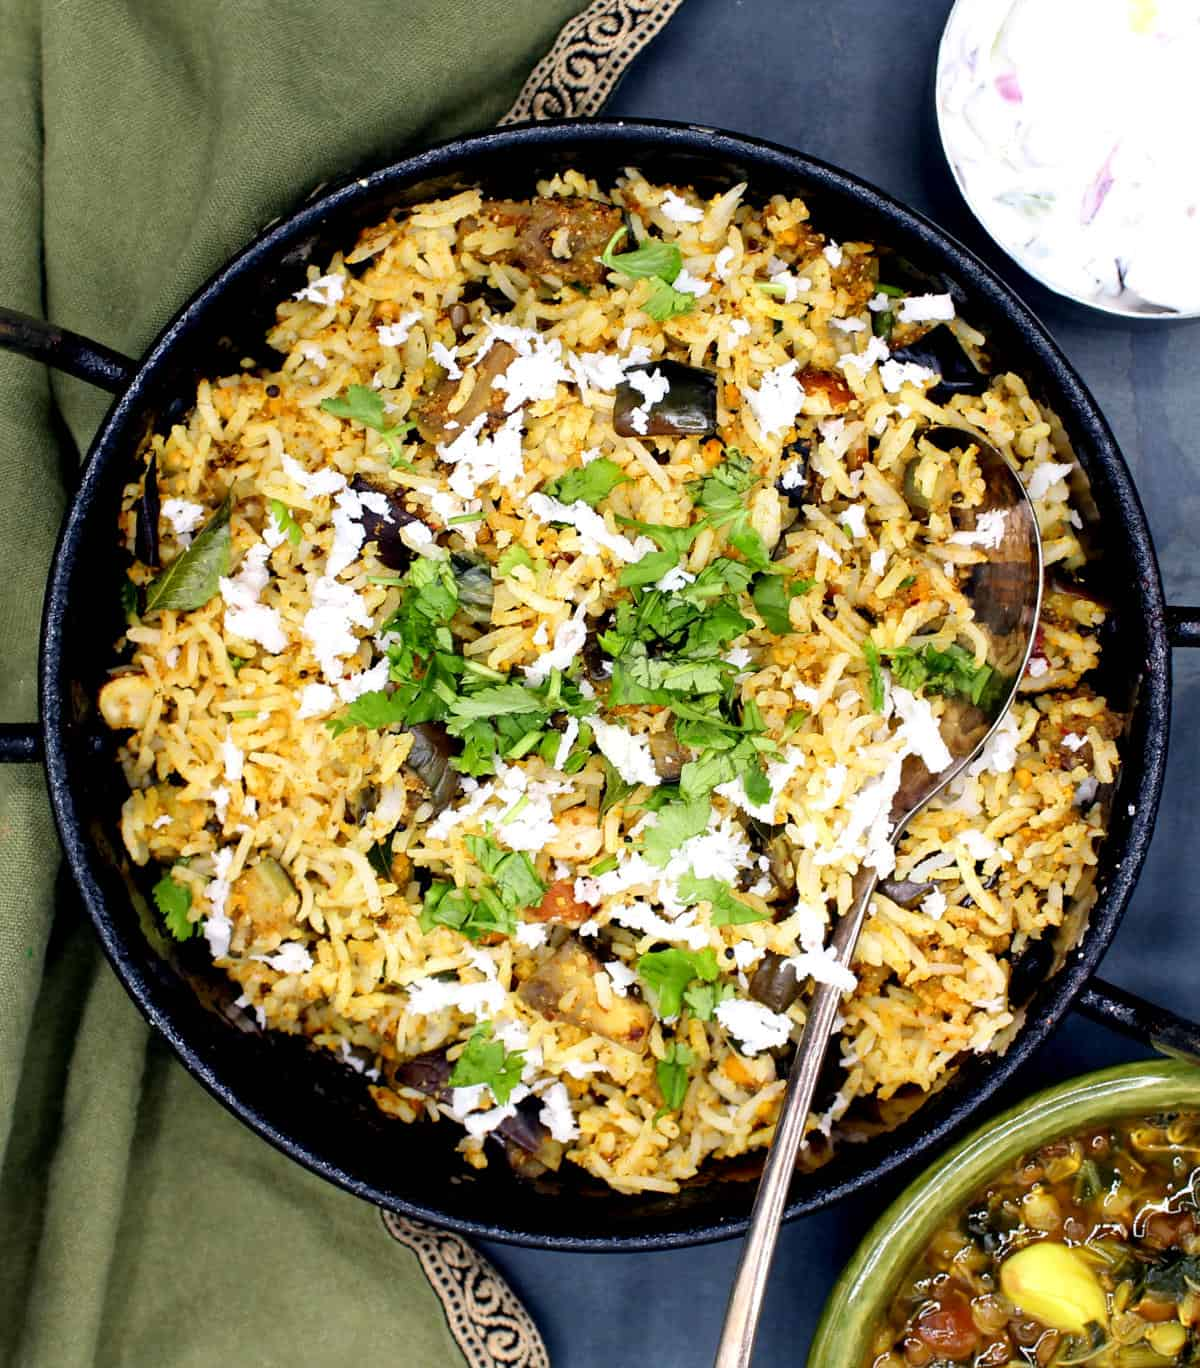 Photo of vangi bath or south Indian eggplant rice served in a steel karahi bowl with cilantro and coconut garnish and raita and dal on the side.